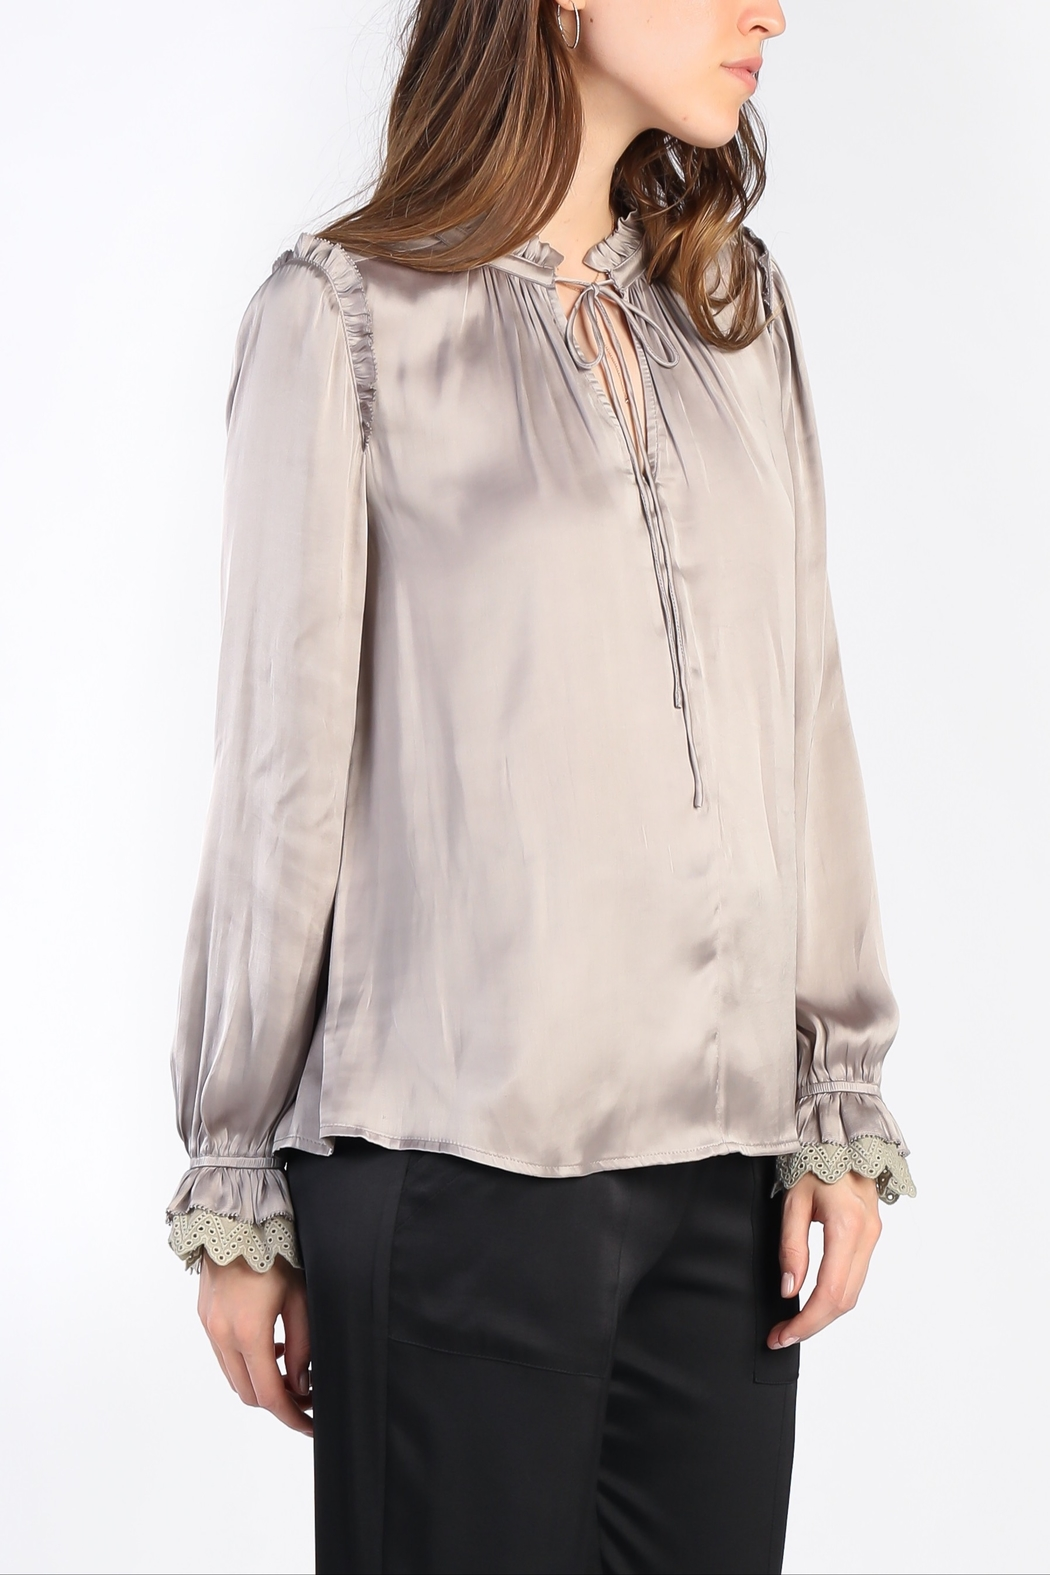 Current Air Ruffled V Tie Neck Lace Trim Blouse - Main Image